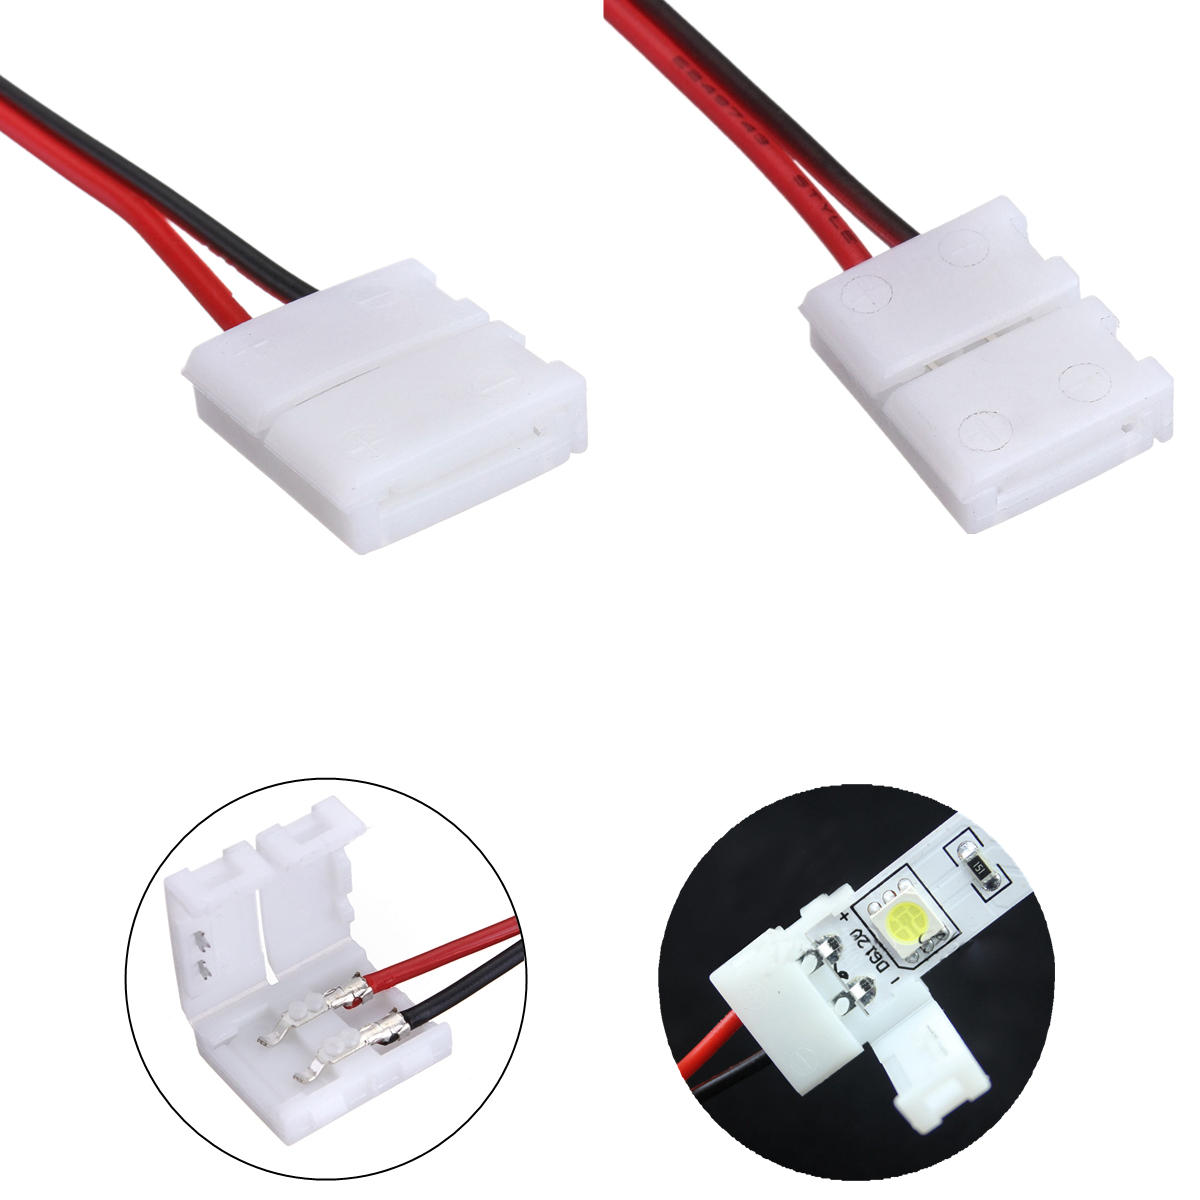 Lustreon 2 Pins Power Connector Adaptor For 3528 5050 Led Strip Wire Wiring A Wall Socket South Africa With Pcb